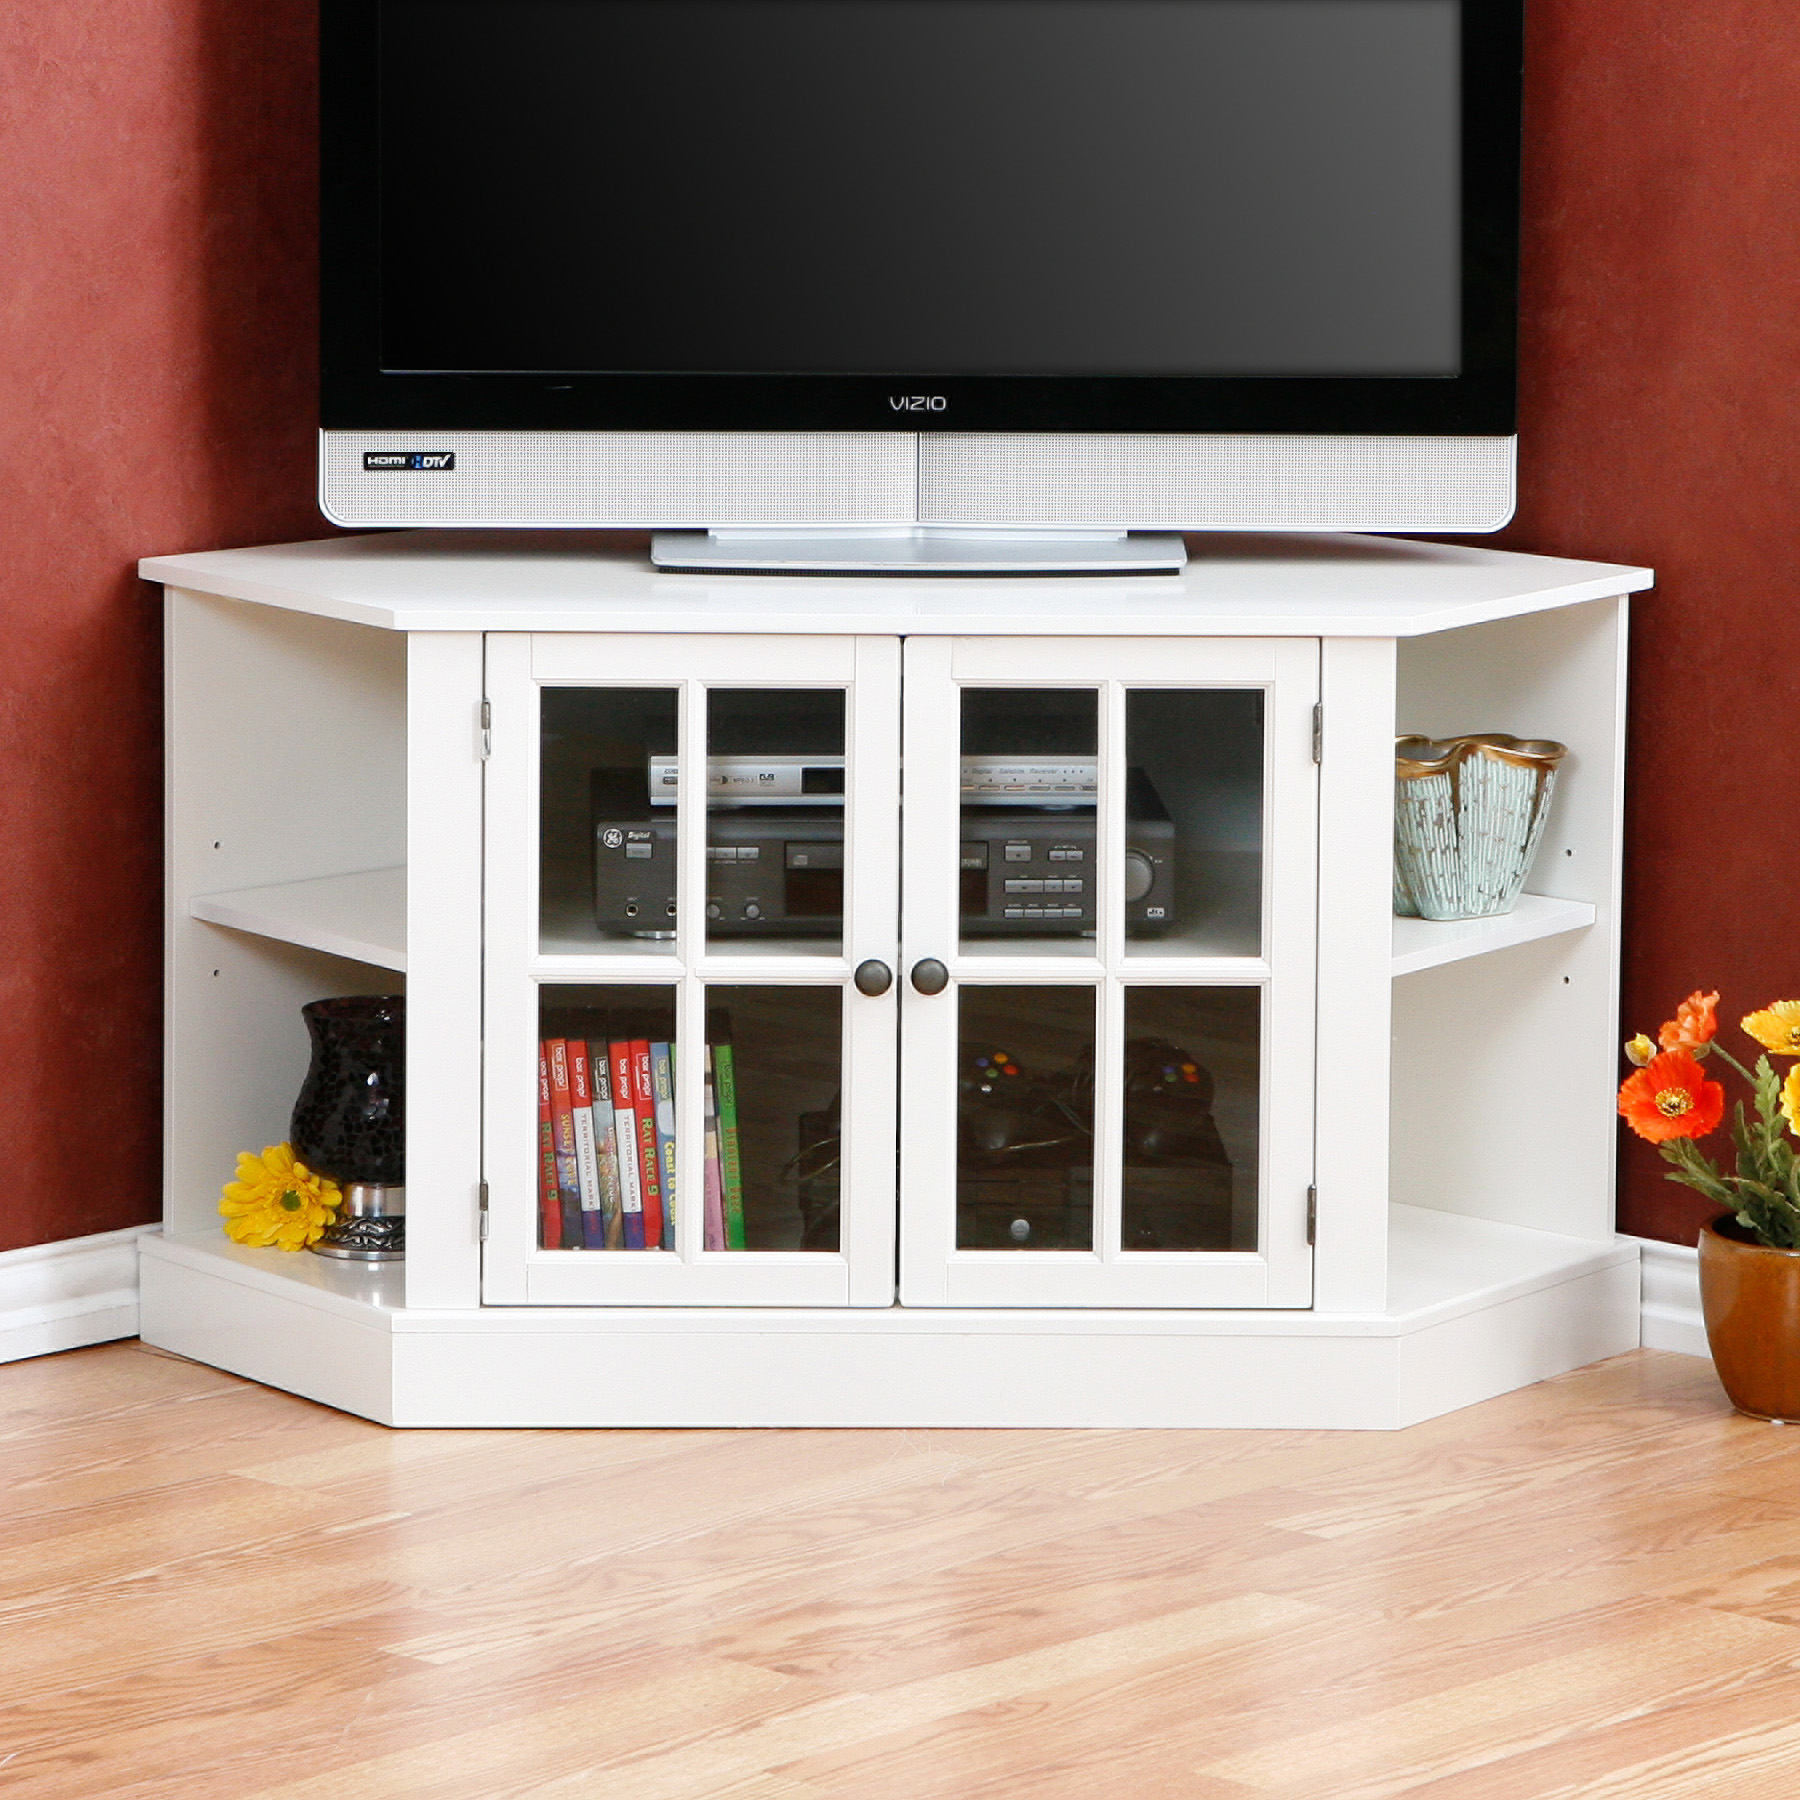 White Tall Tv Desk With Gl Door Cabinet And Side Shelving Units For Corner Spot